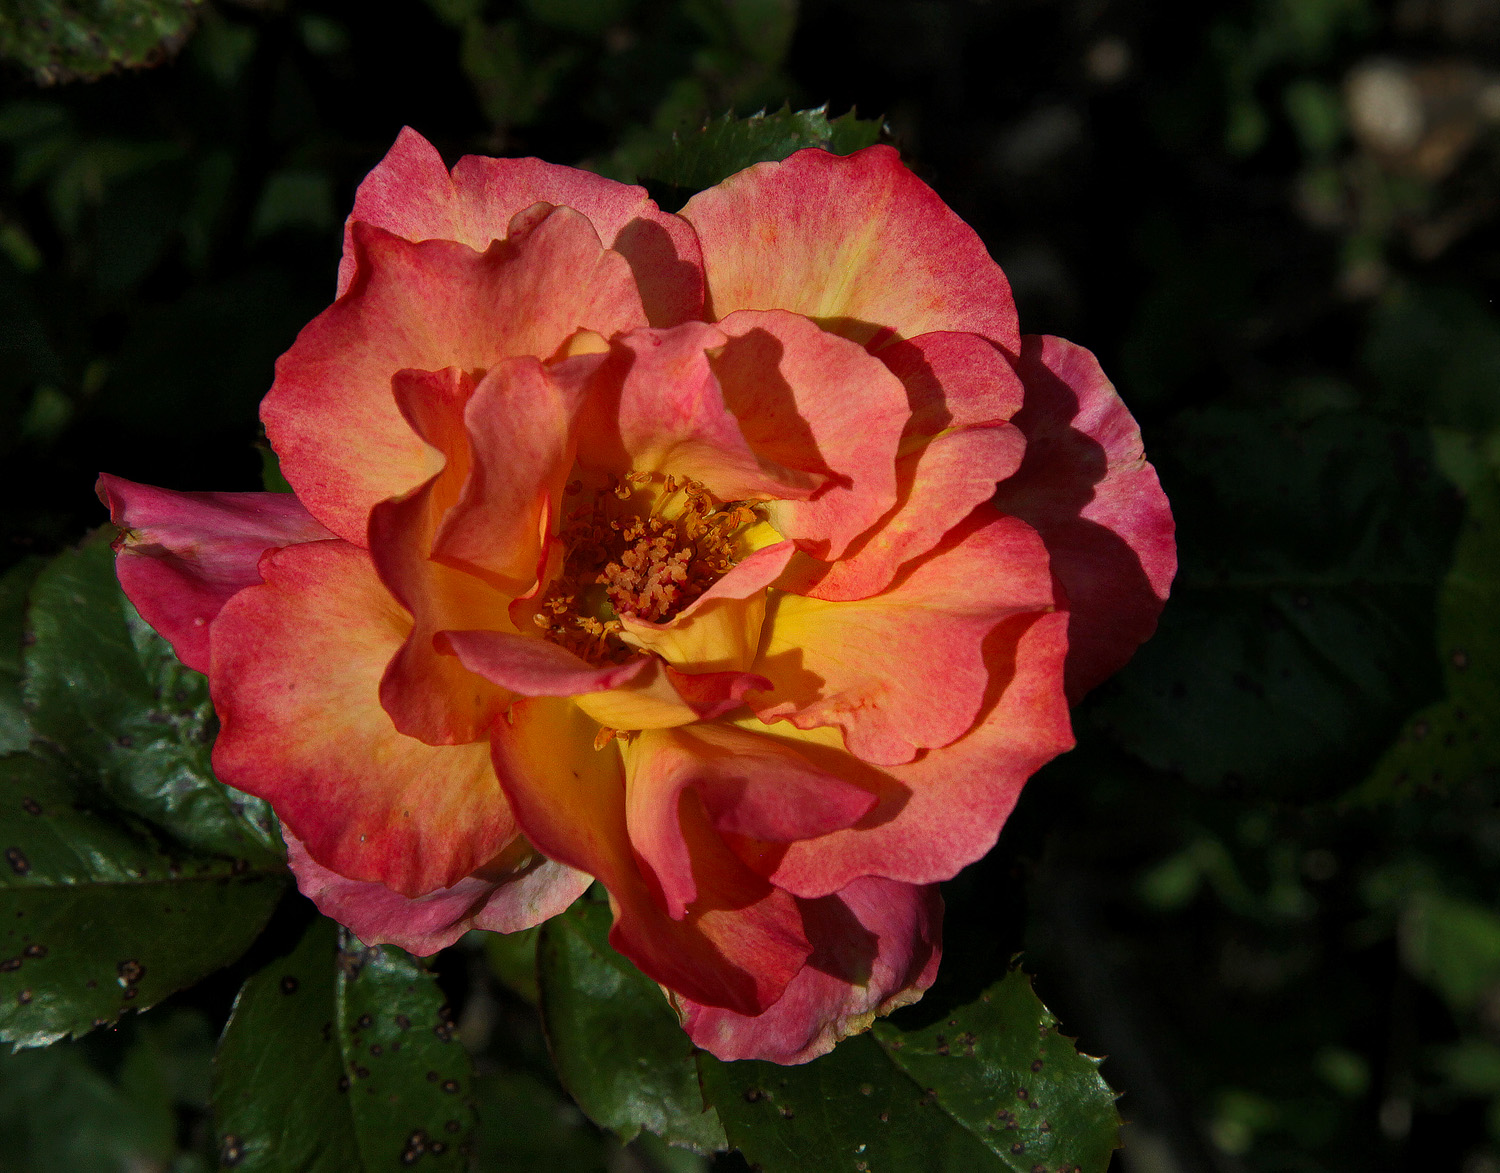 garden rose img aw author sava gregory and verena